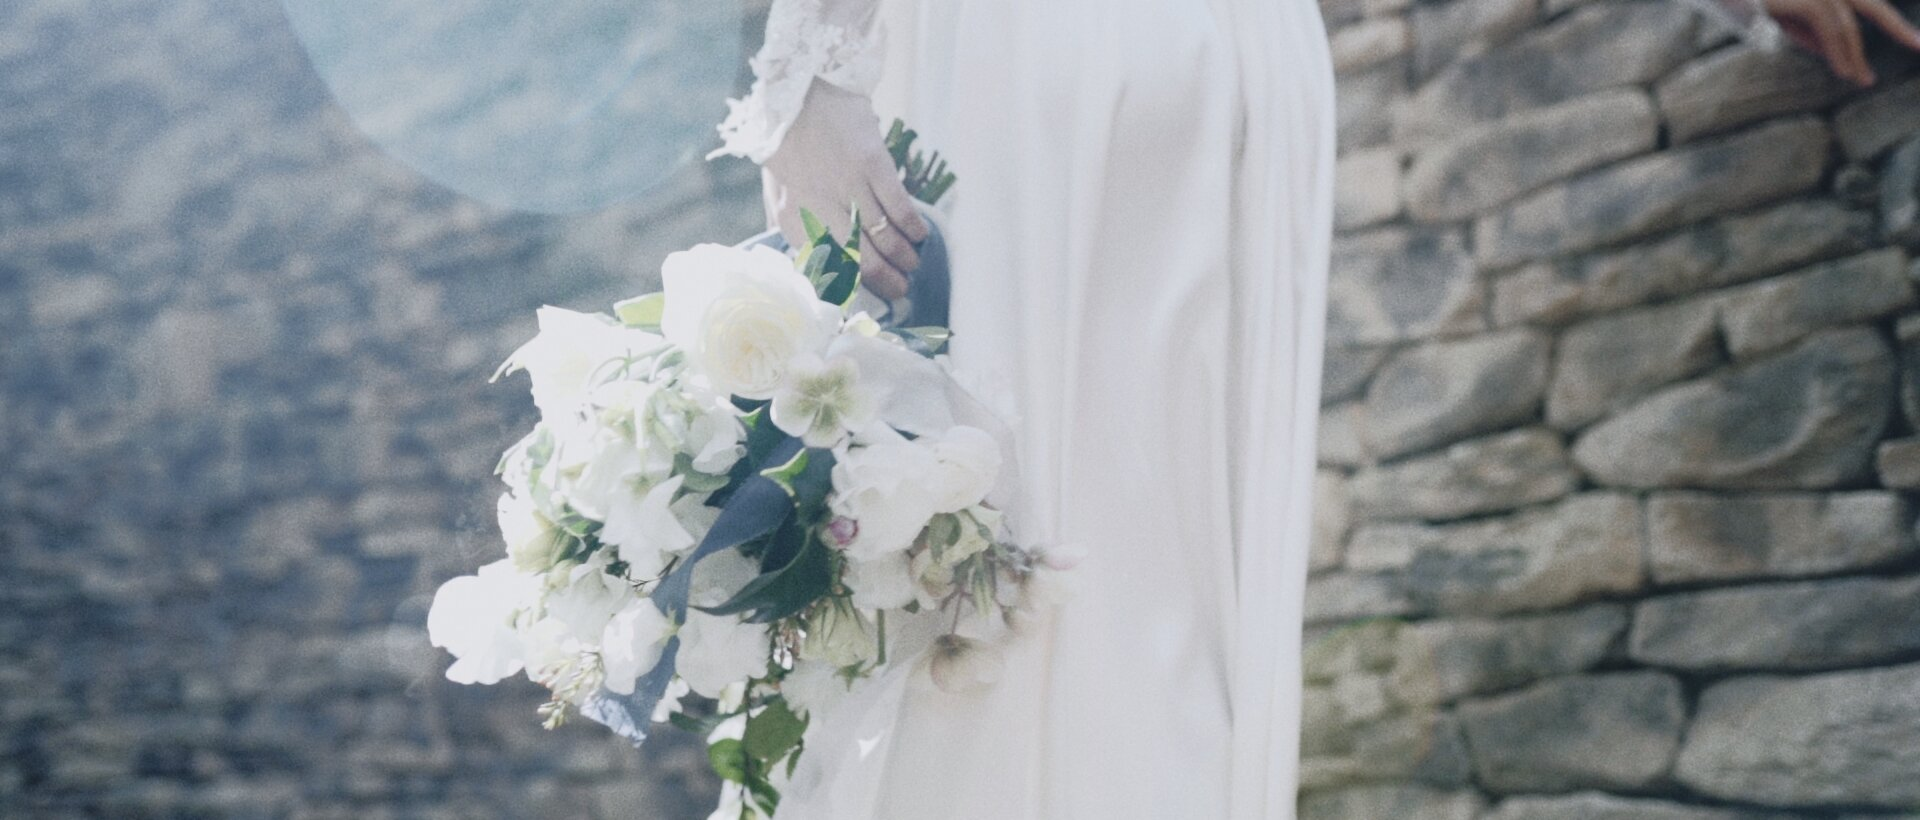 bride with bouquet at Montage Kapalua luxury wedding